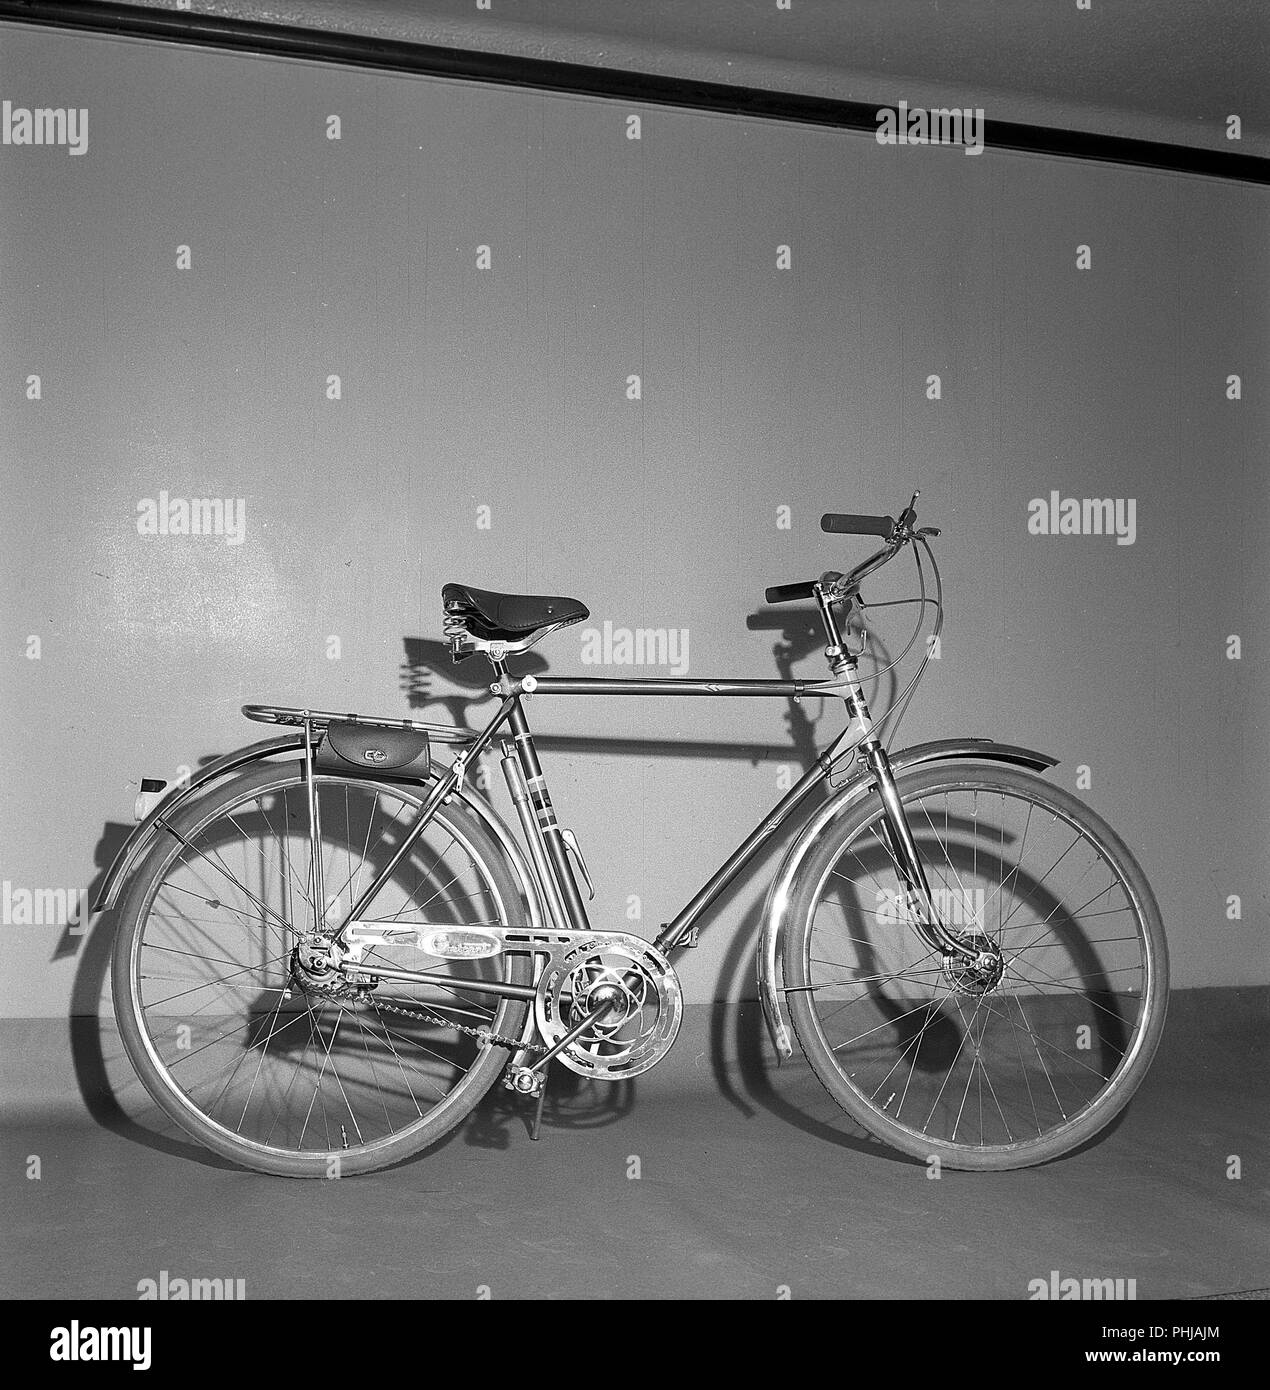 1950s bicycle. An exclusive model for men made by Swedish manufacturer Nymanbolaget for the brand Crescent. It has drum breaks on the front wheel, three gears, practical leather case for tools and a holder for the bicycle pump. The company marketed itself as producing the World champion bike. Sweden 1956 ref CV15-9 - Stock Image